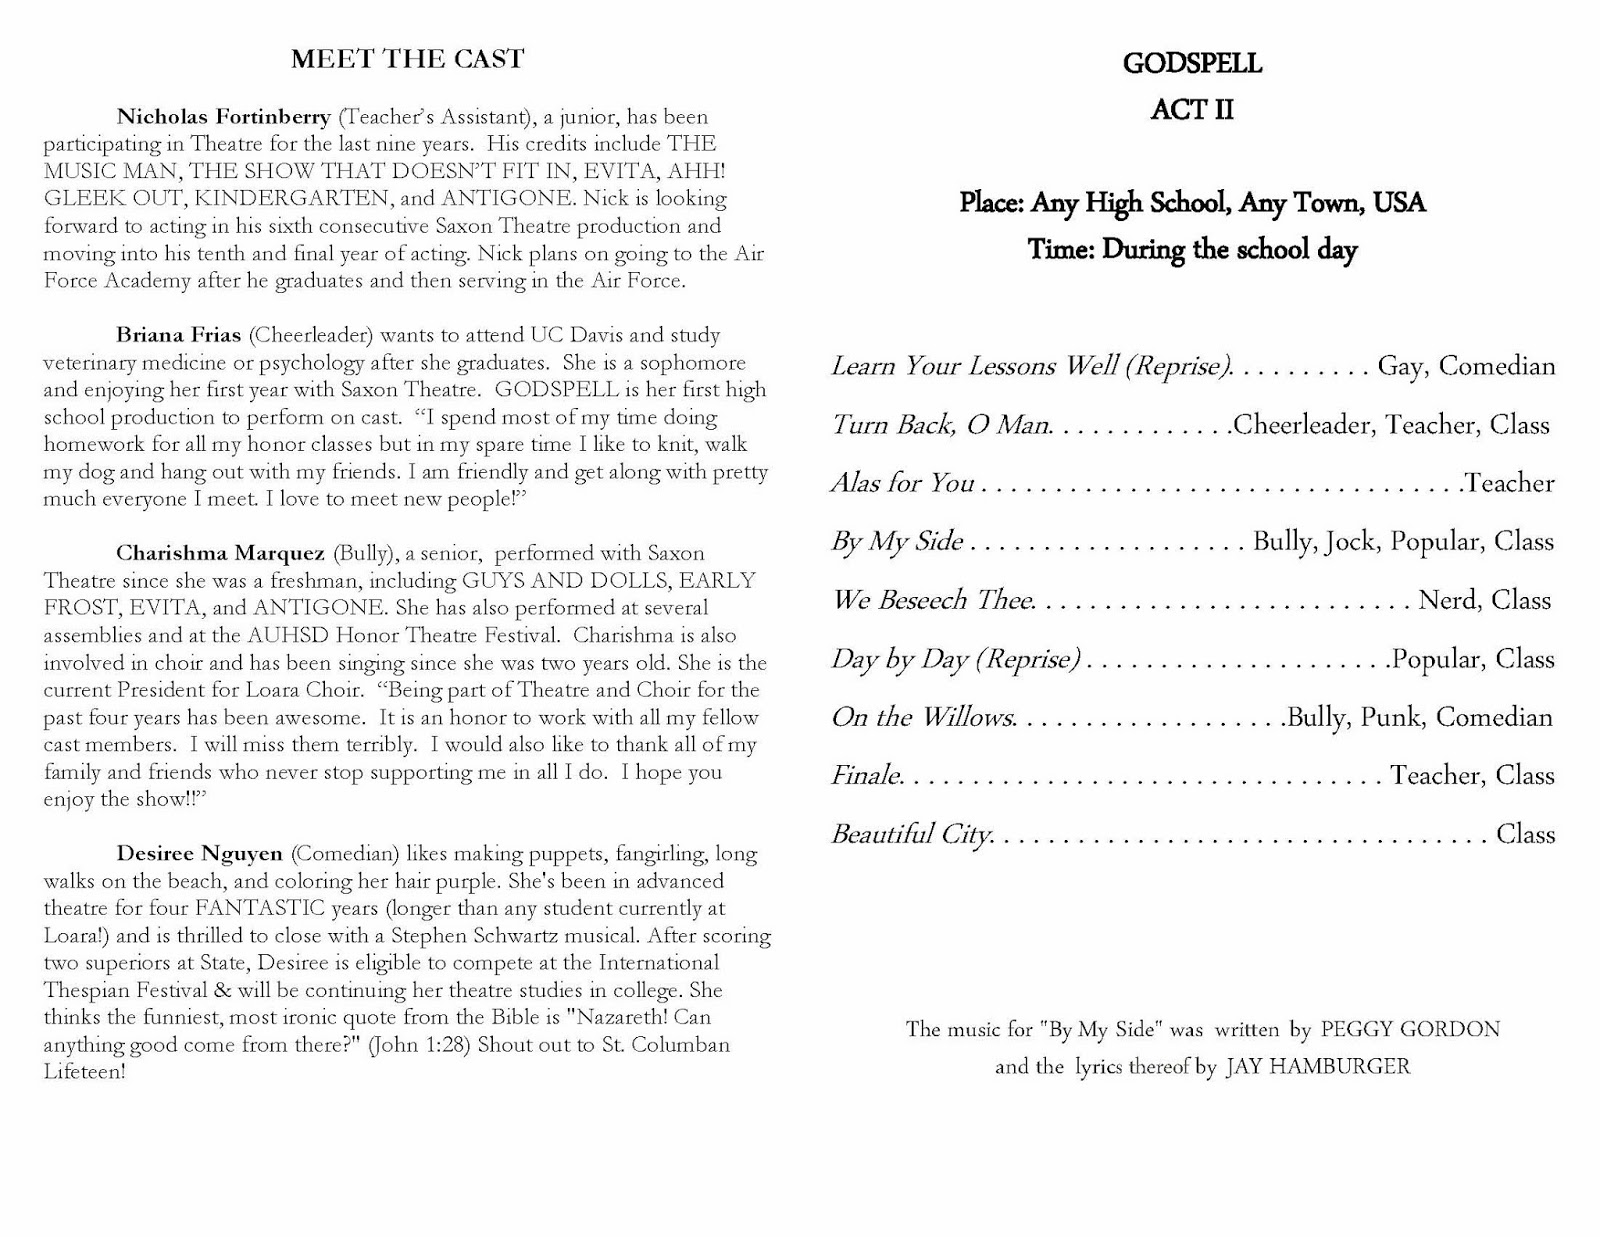 GODSPELL+program Page 6 Top Result 70 Inspirational Class Reunion Program Template